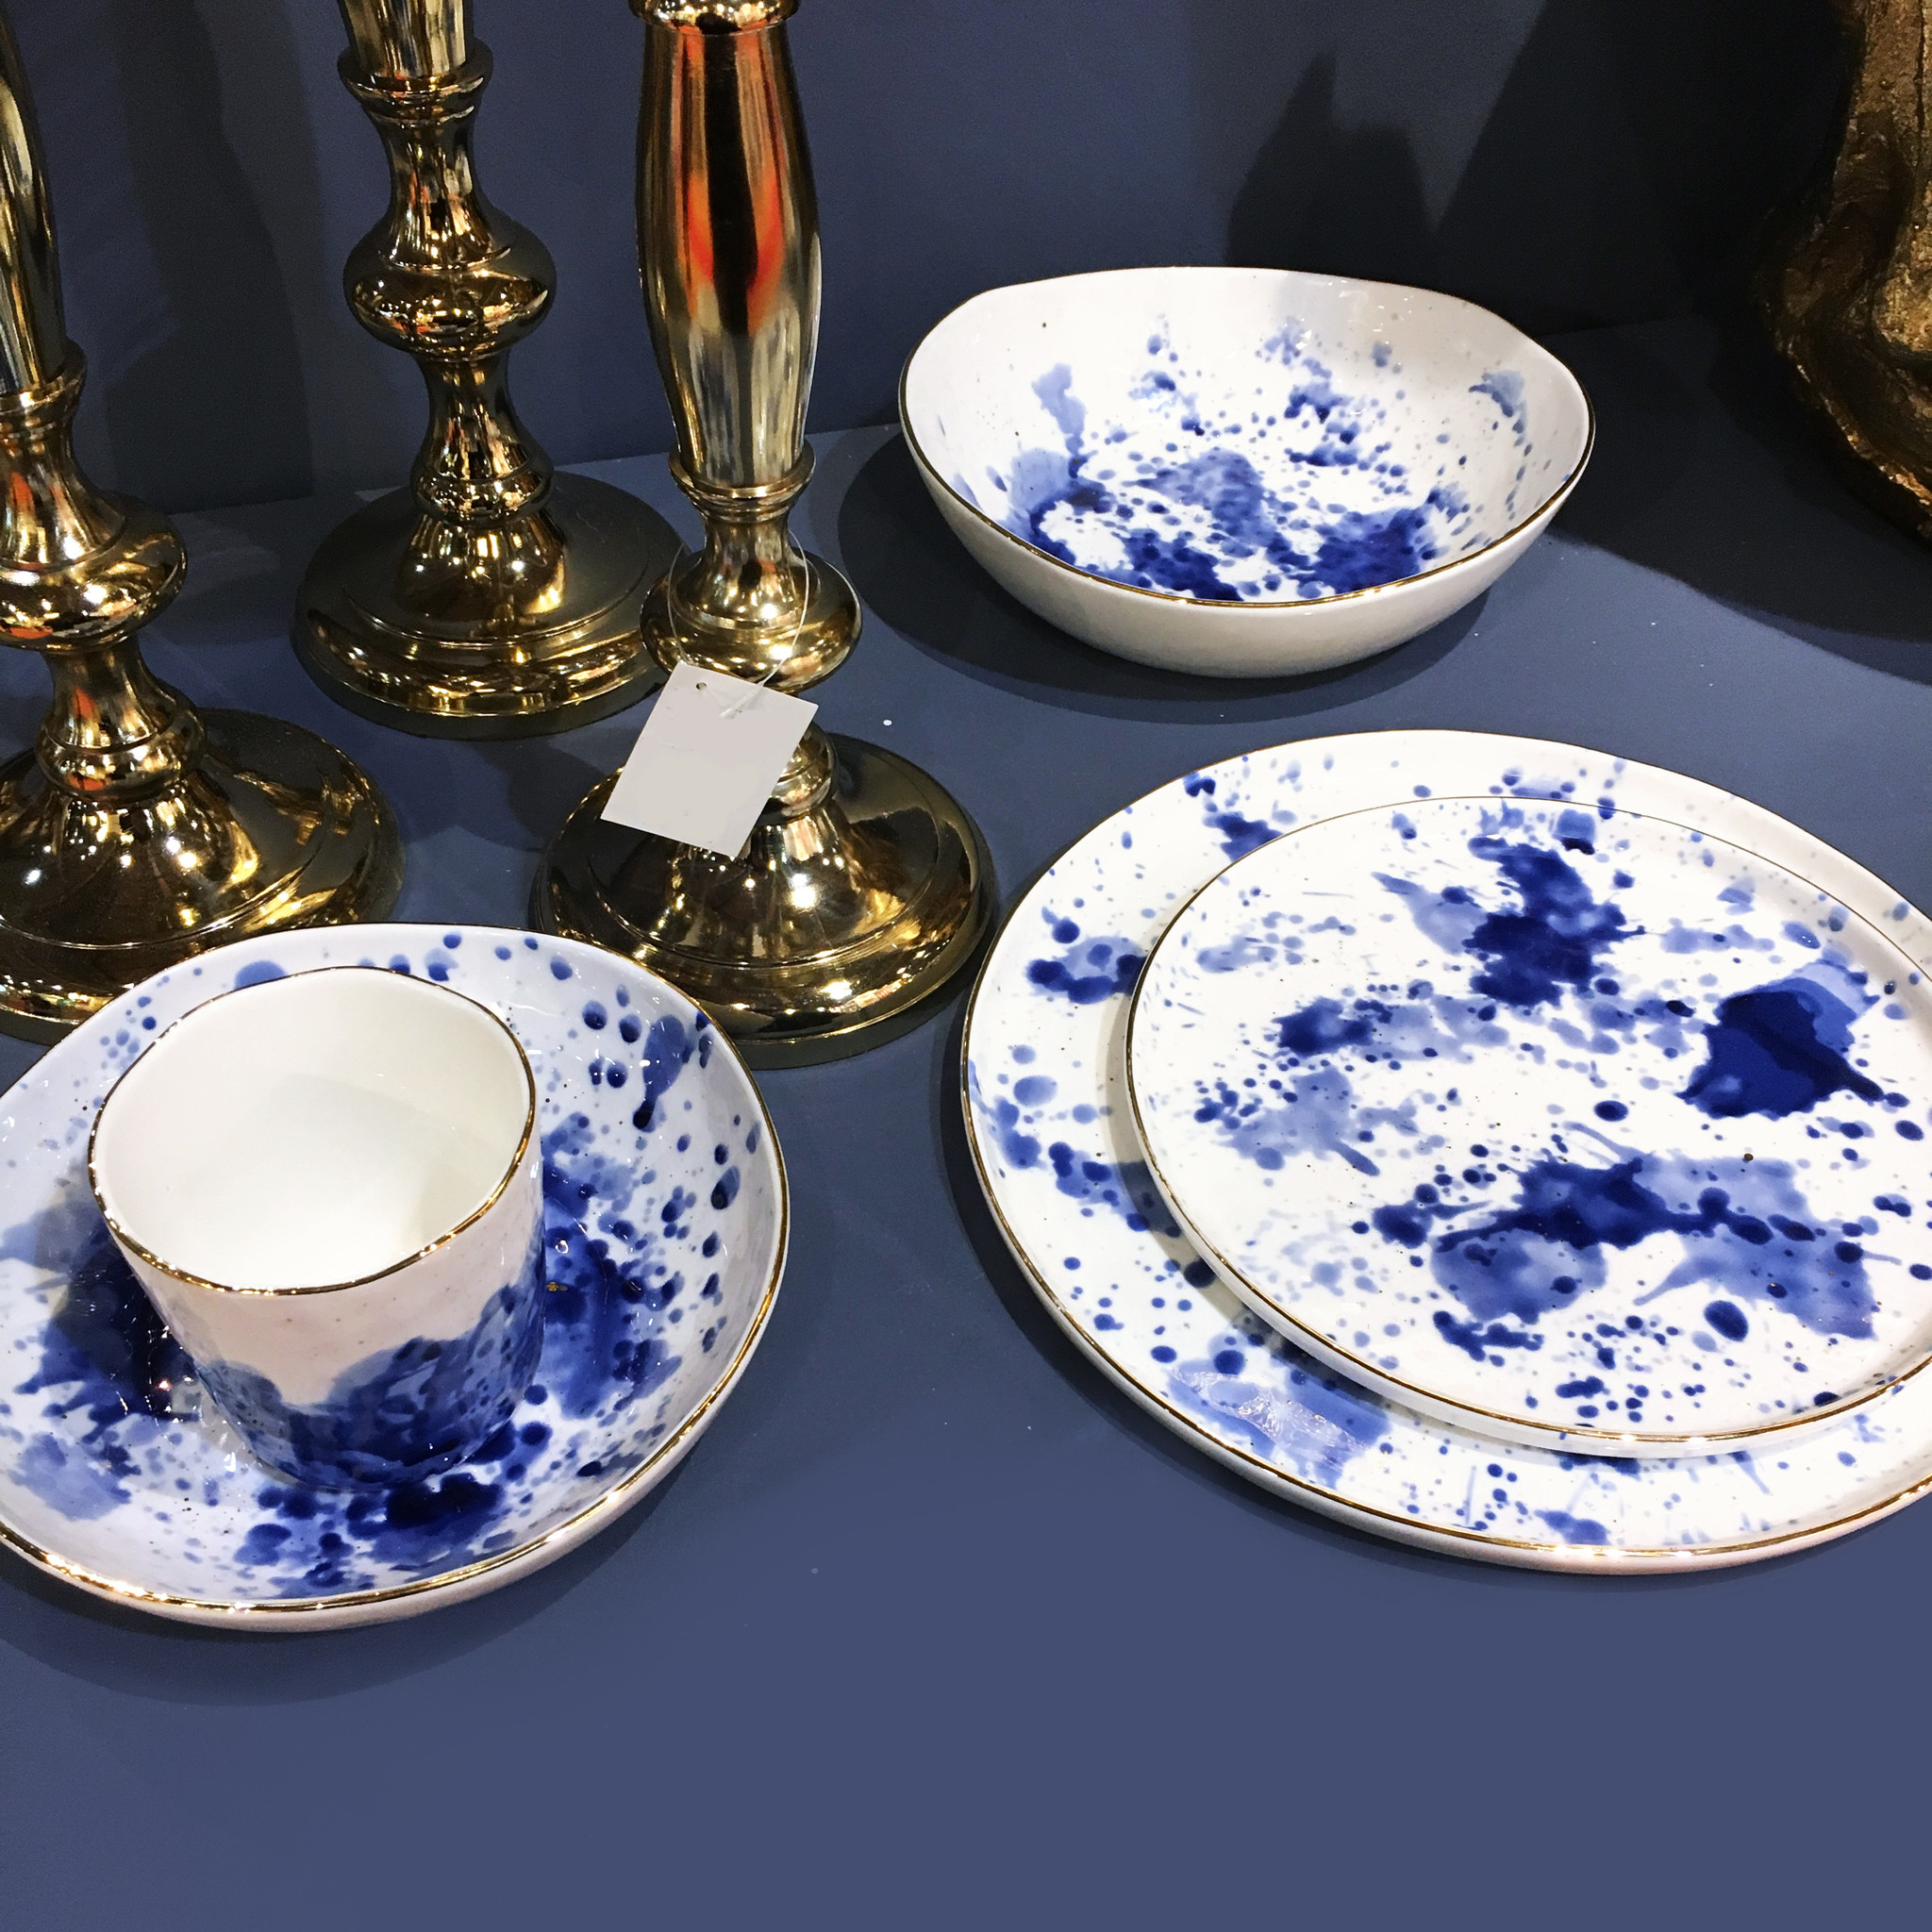 White bowl with blue ink decor